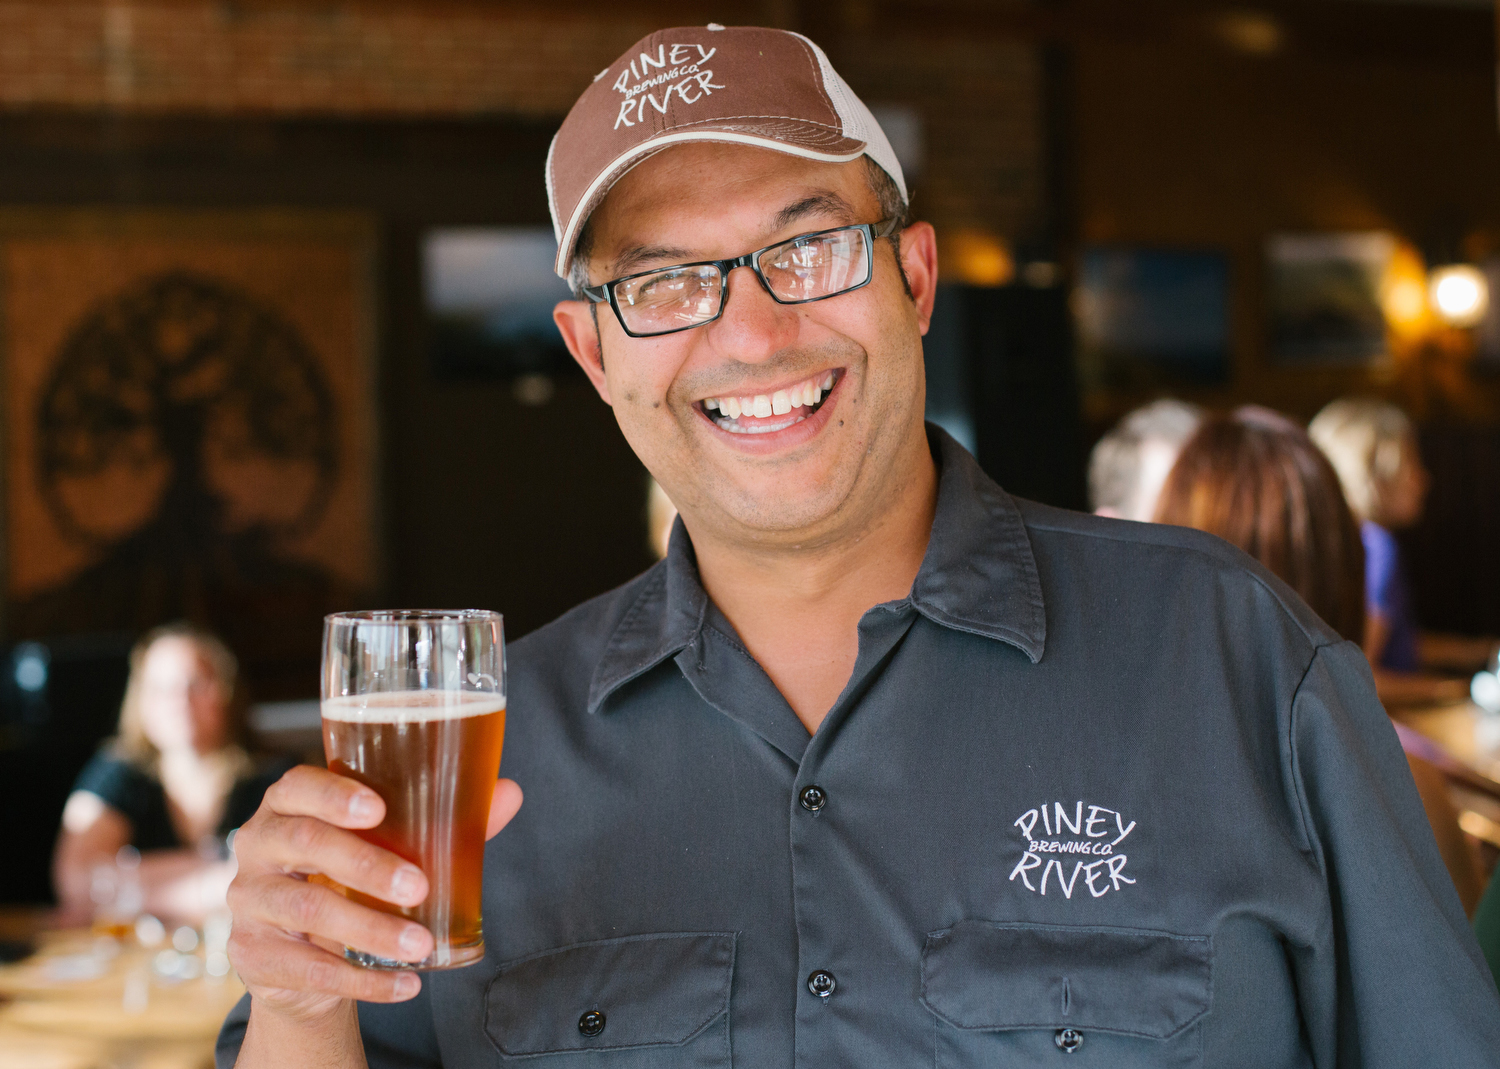 Brian Durham, owner and brewer at Piney River Brewing Company